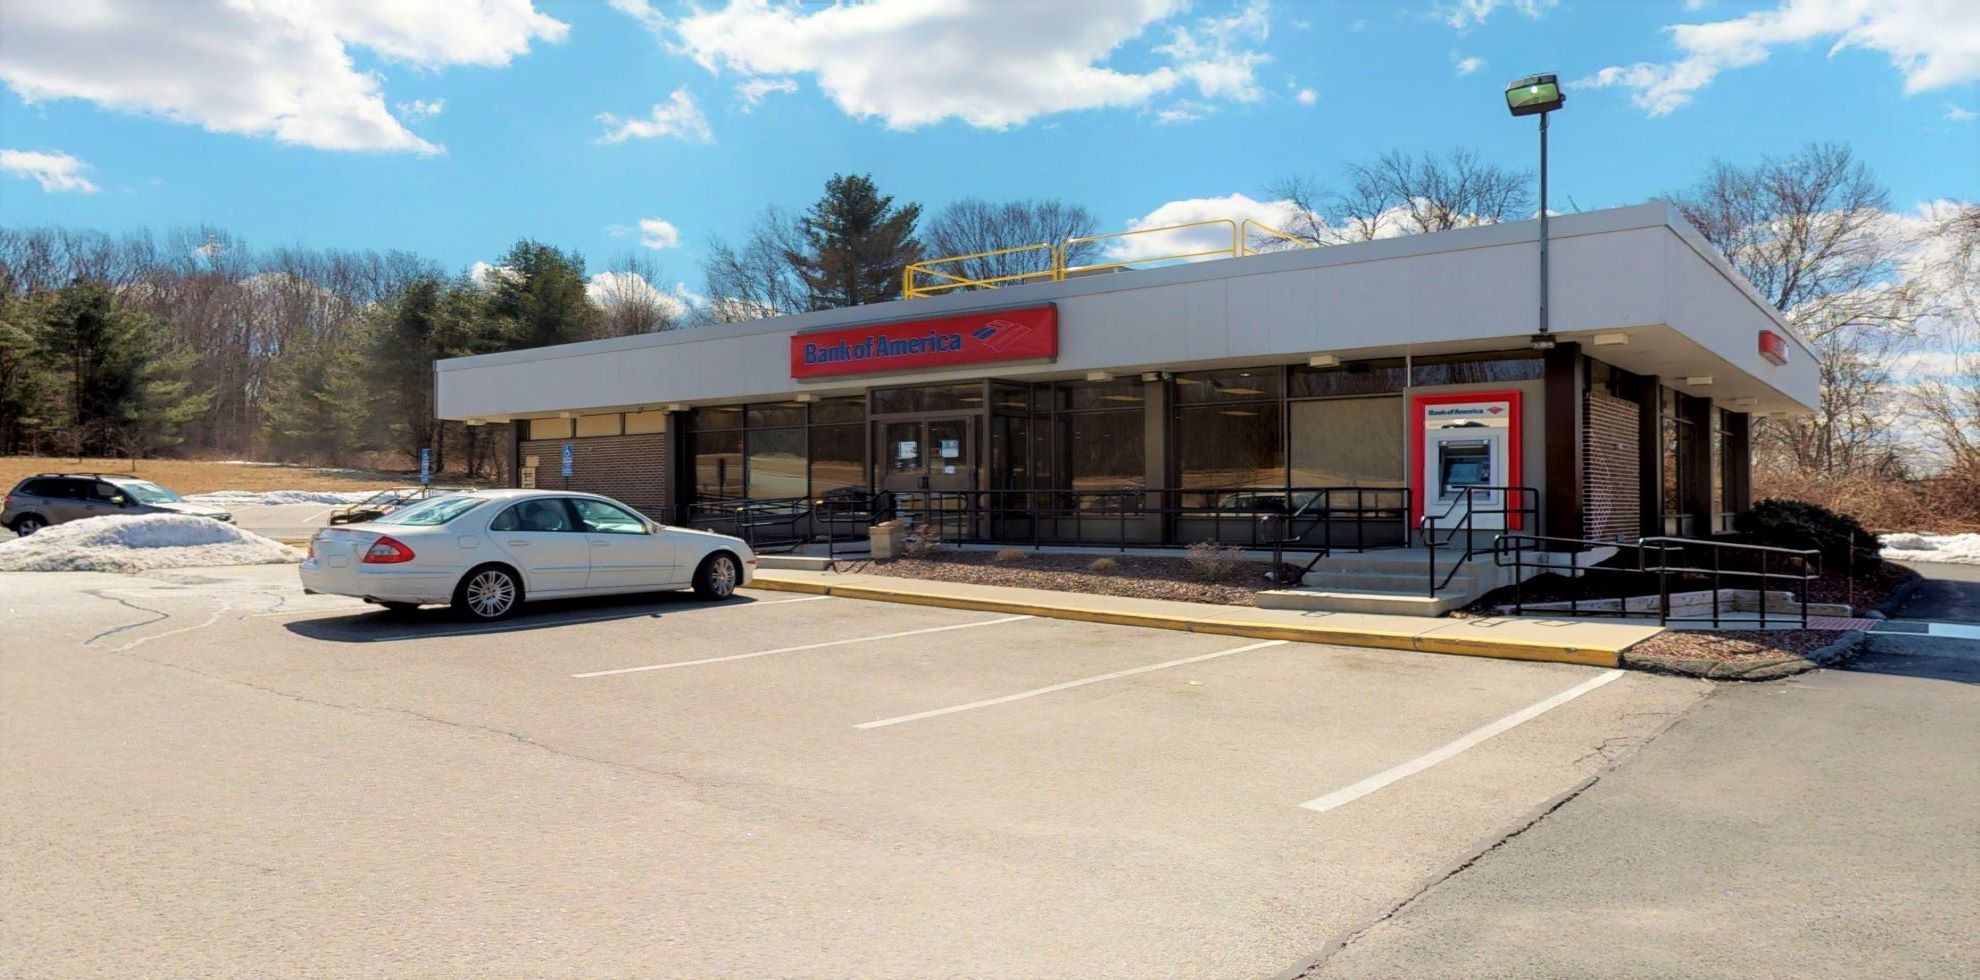 Bank of America financial center with drive-thru ATM | 574 Middle Tpke, Mansfield, CT 06268